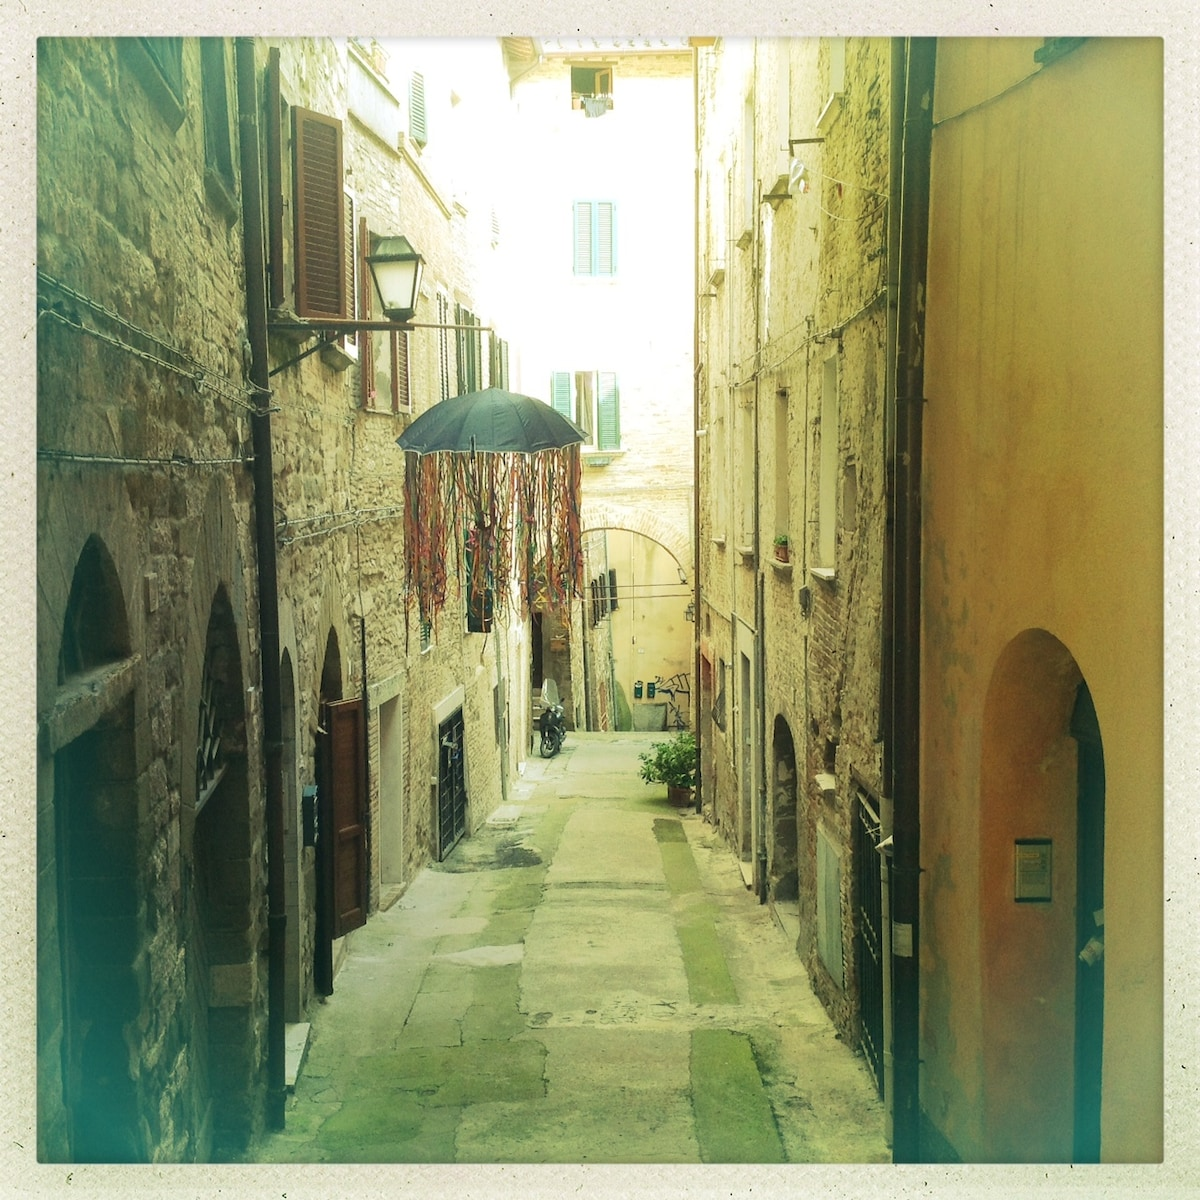 Via della Madonna, the street where the house is (in the city centre)